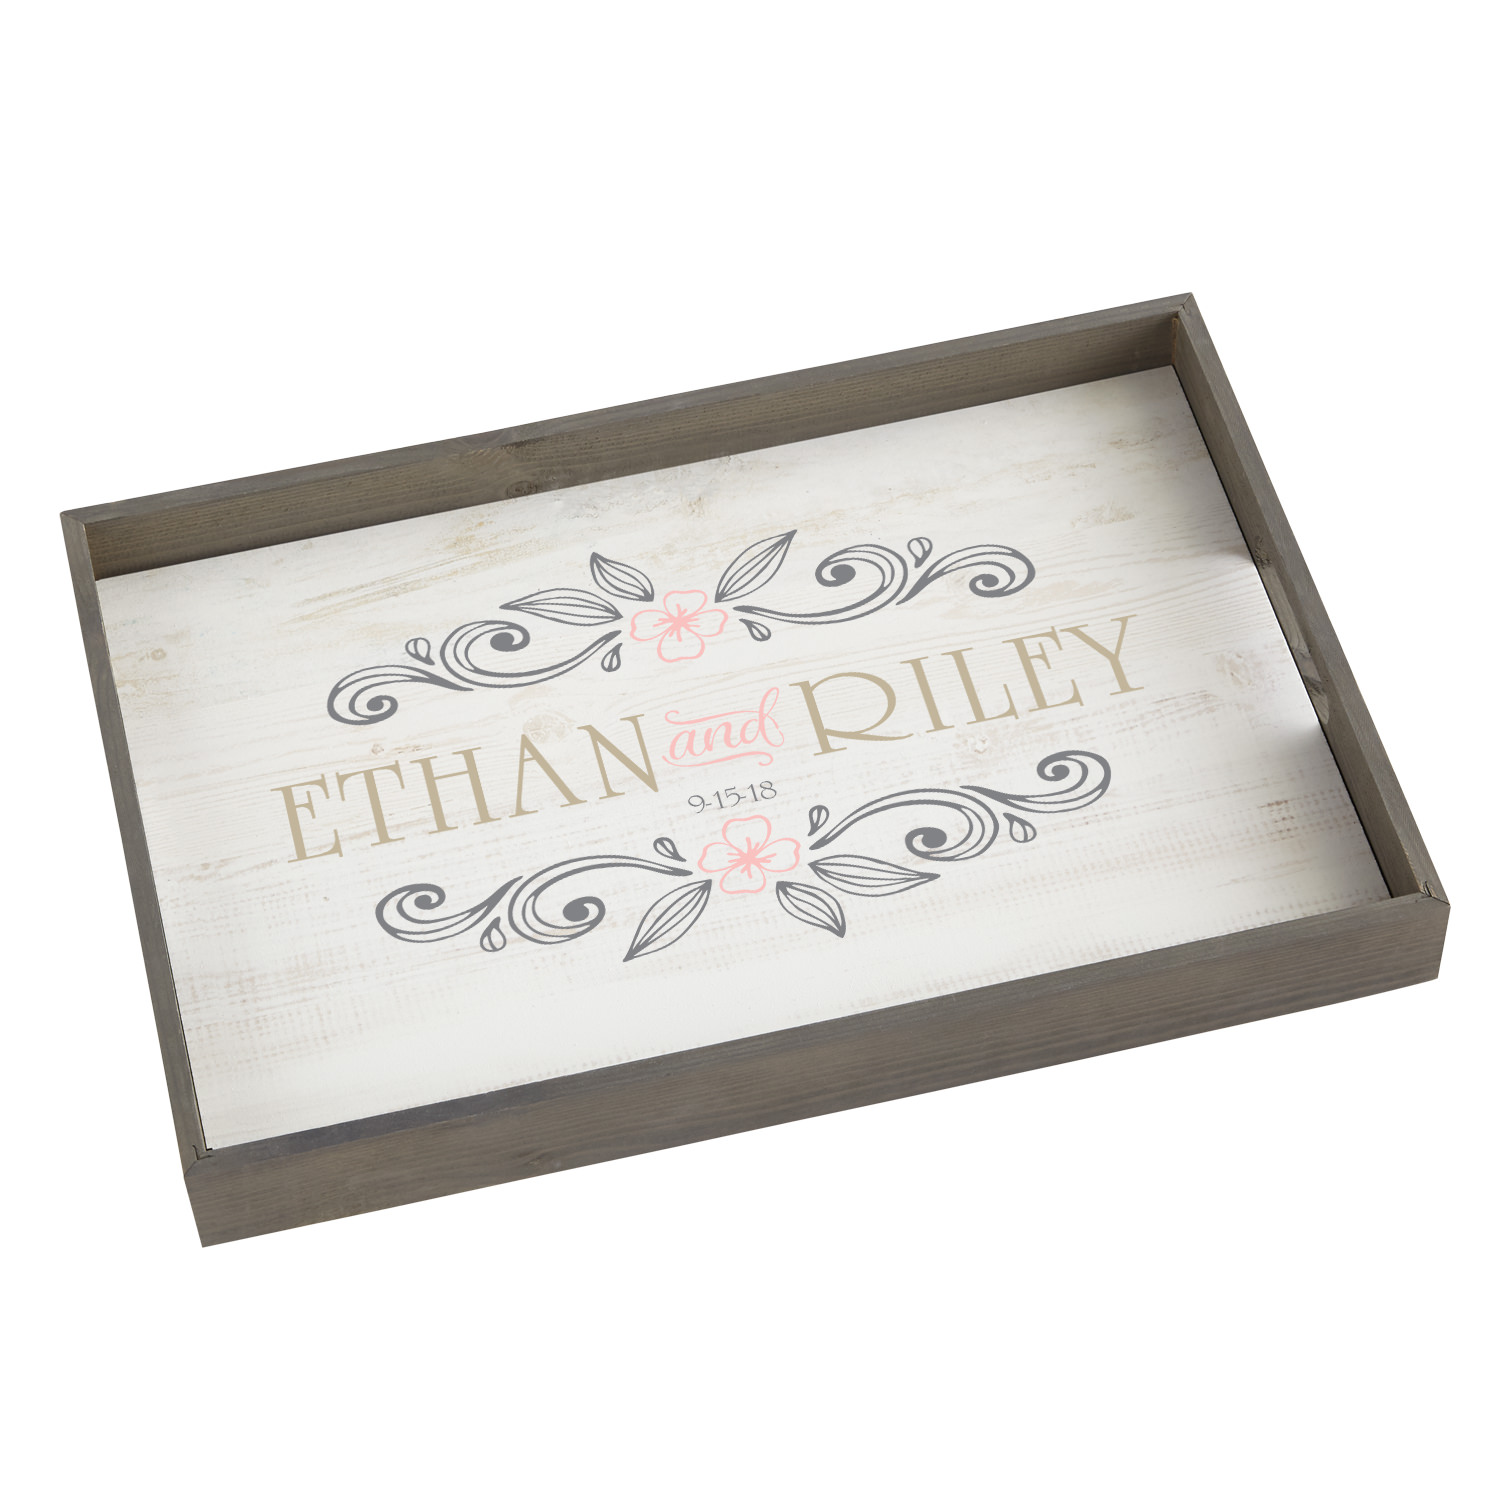 Personalized Rustic Elegance Wood Serving Tray - Available in Pink or Teal